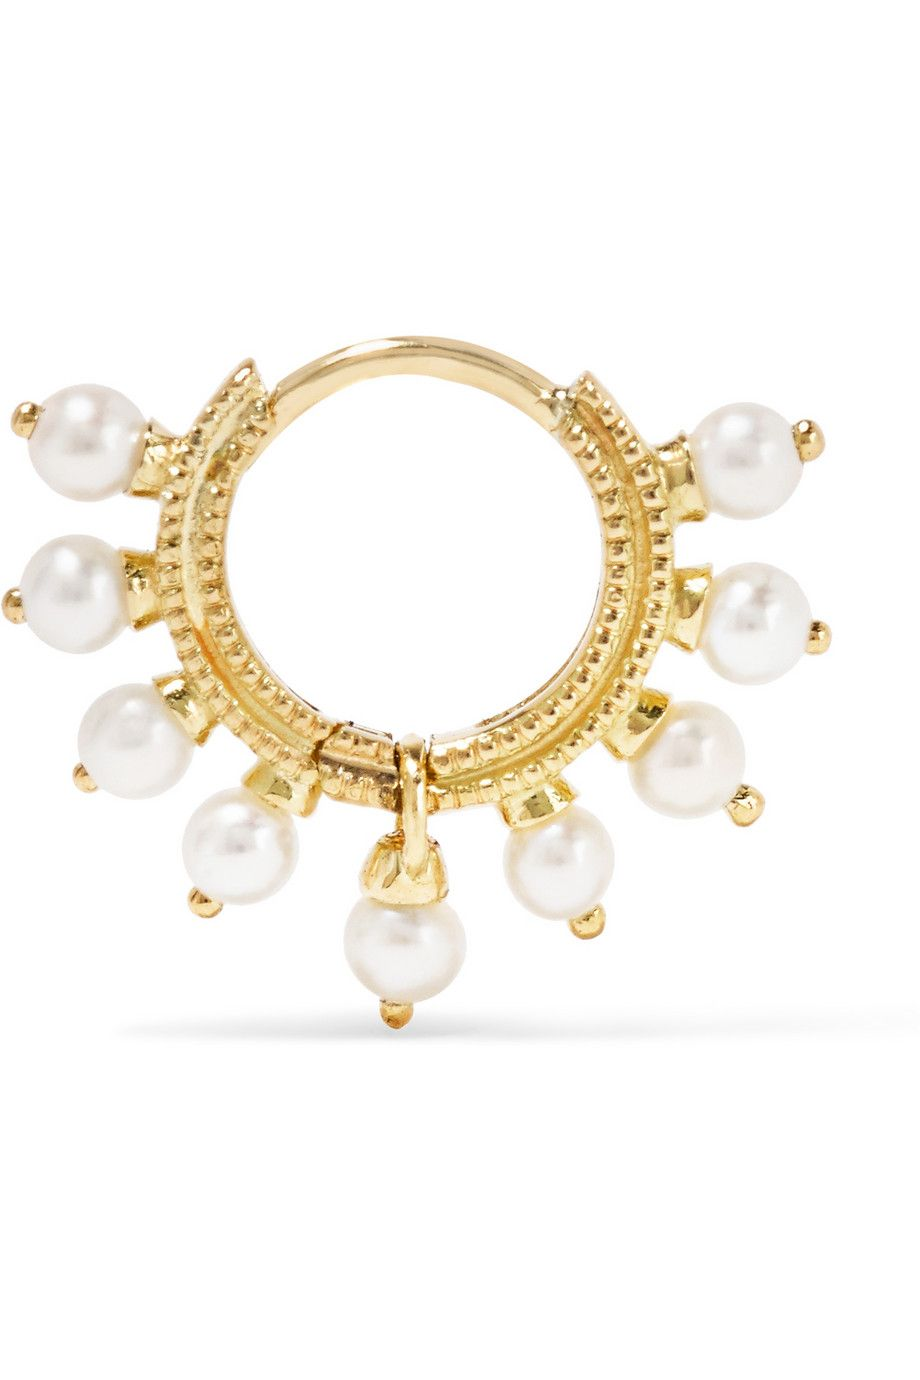 MARIA TASH 18-karat gold pearl earring$360 Post fastening for pierced ears Pearl: Japan NET-A-PORTER.COM is a certified member of the Responsible Jewellery Council